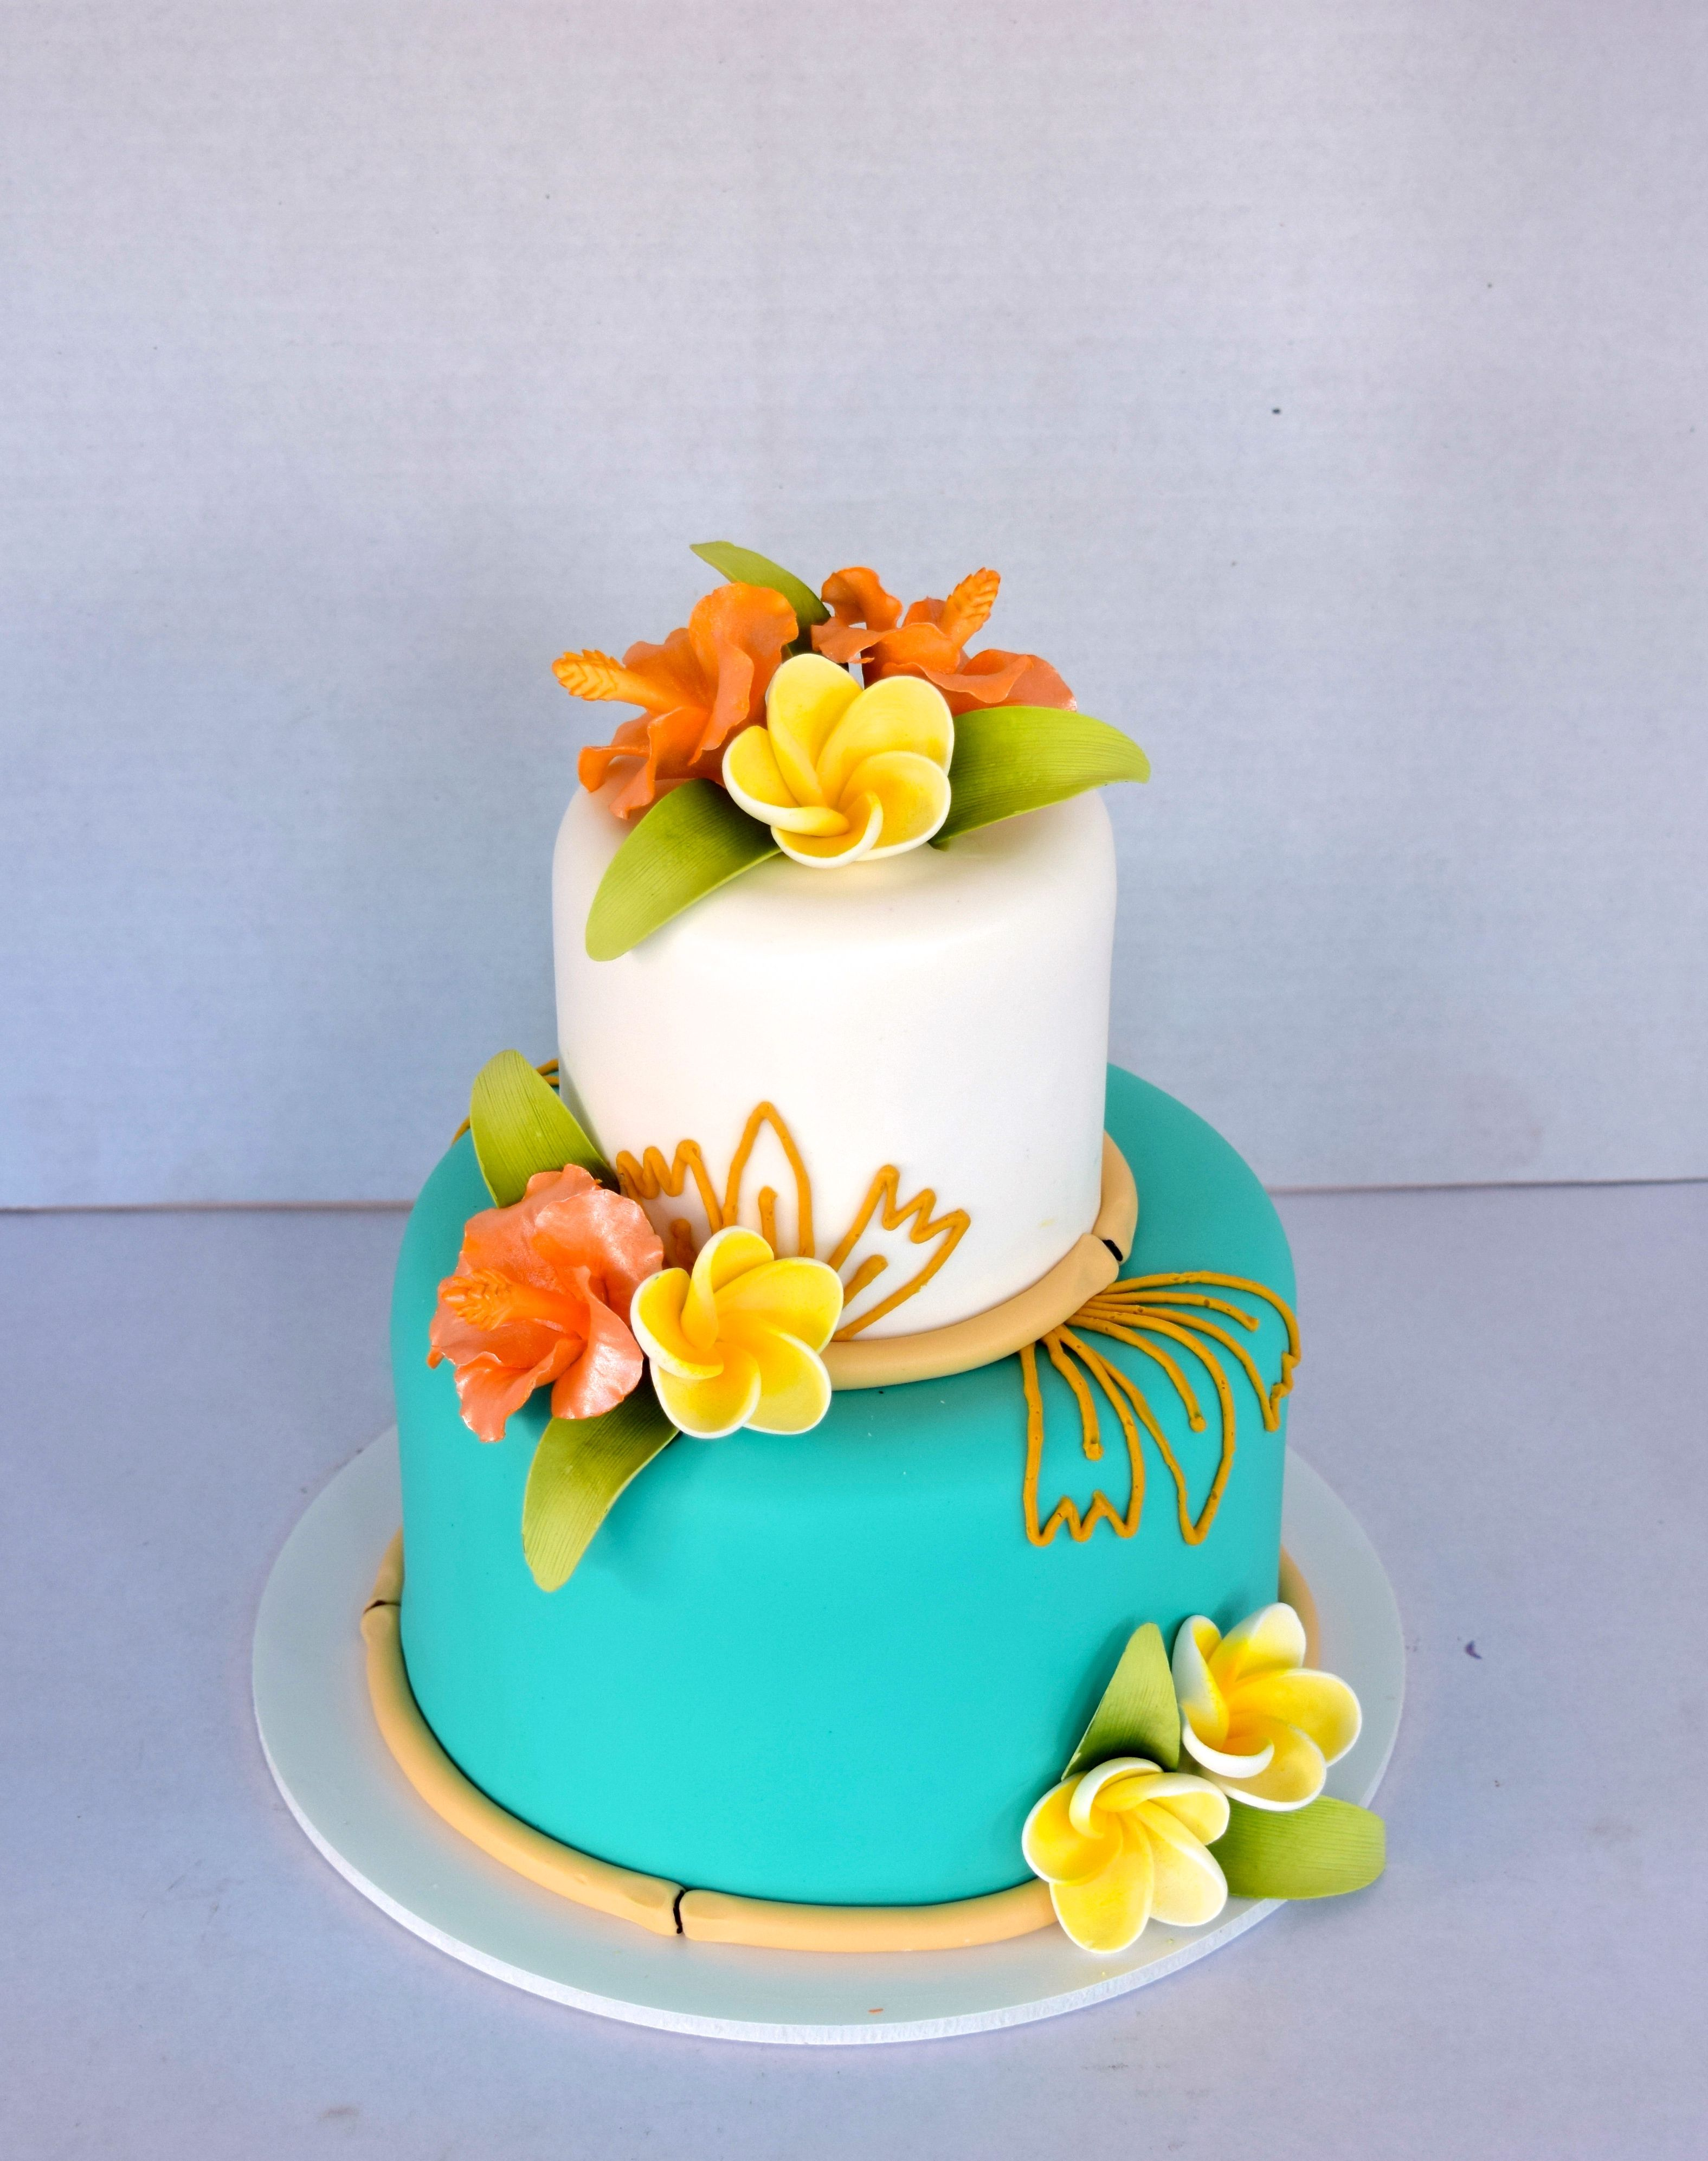 Tropical Wedding Cake In Teal Blue And White 2 Tier Wedding Cake